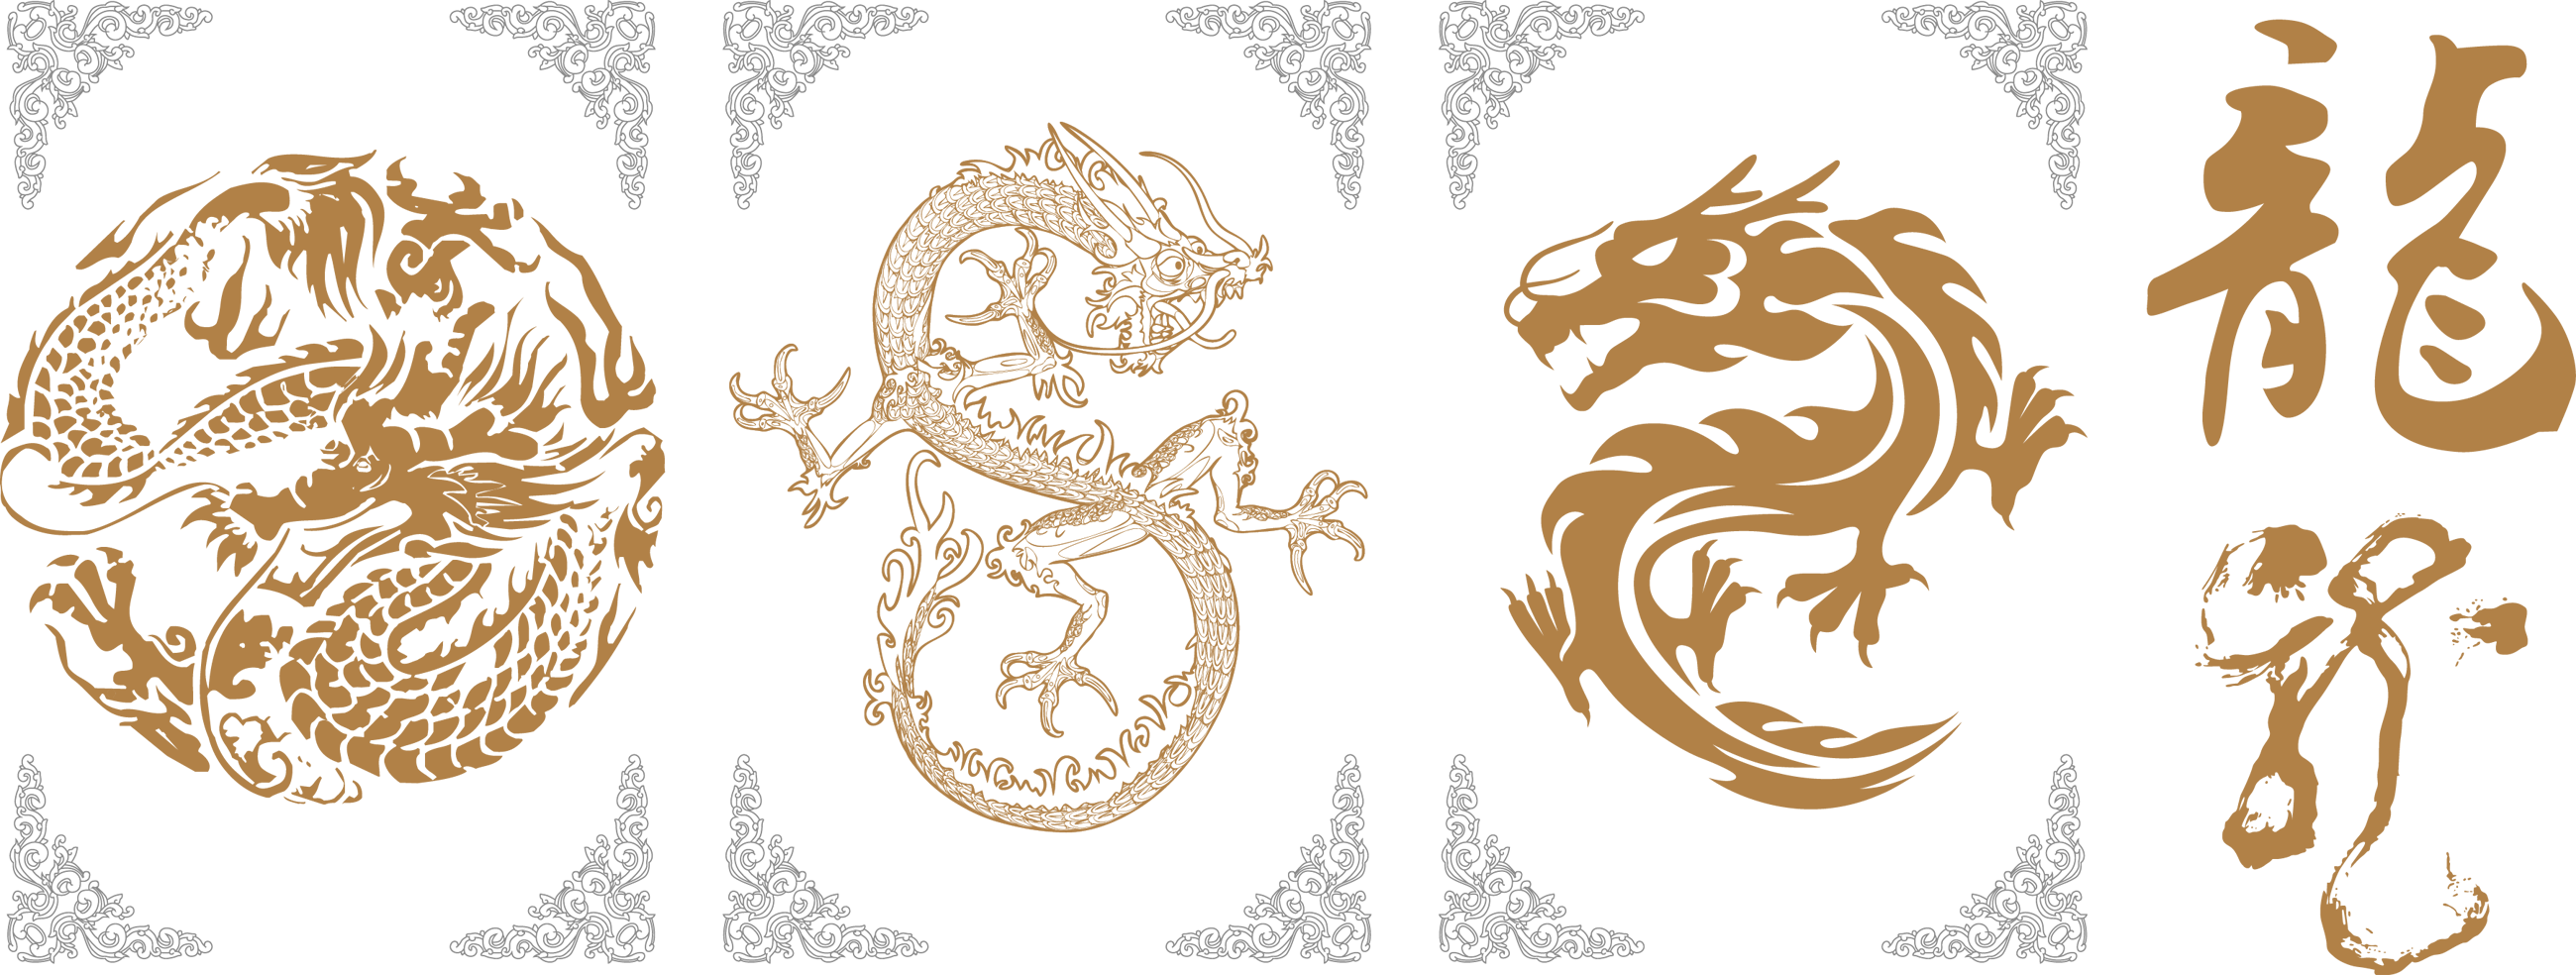 svg free library Download history decorated dragon. Palace clipart ancient palace